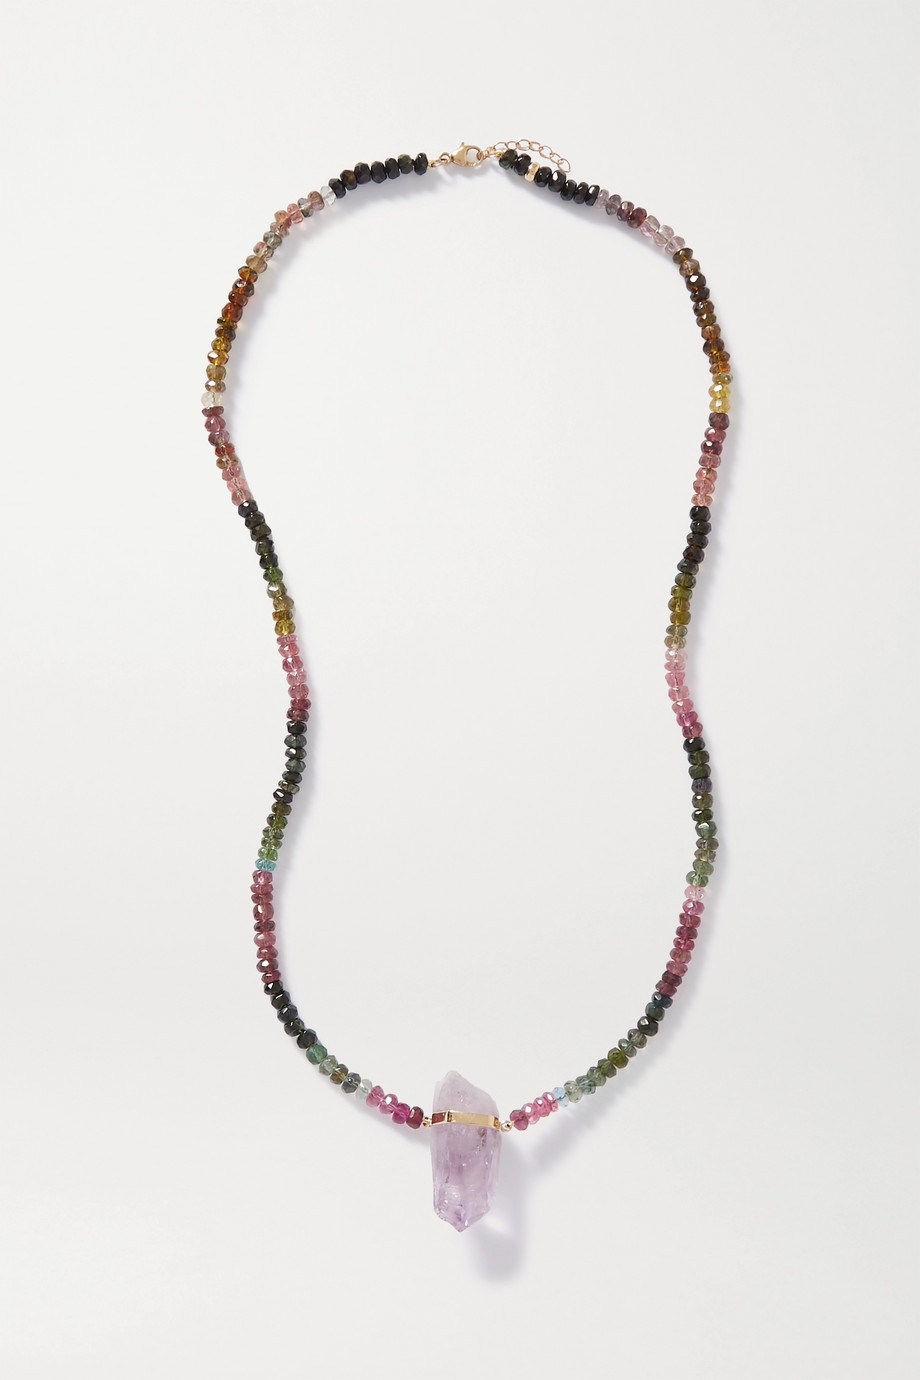 JIA JIA Arizona gold, tourmaline and amethyst necklace